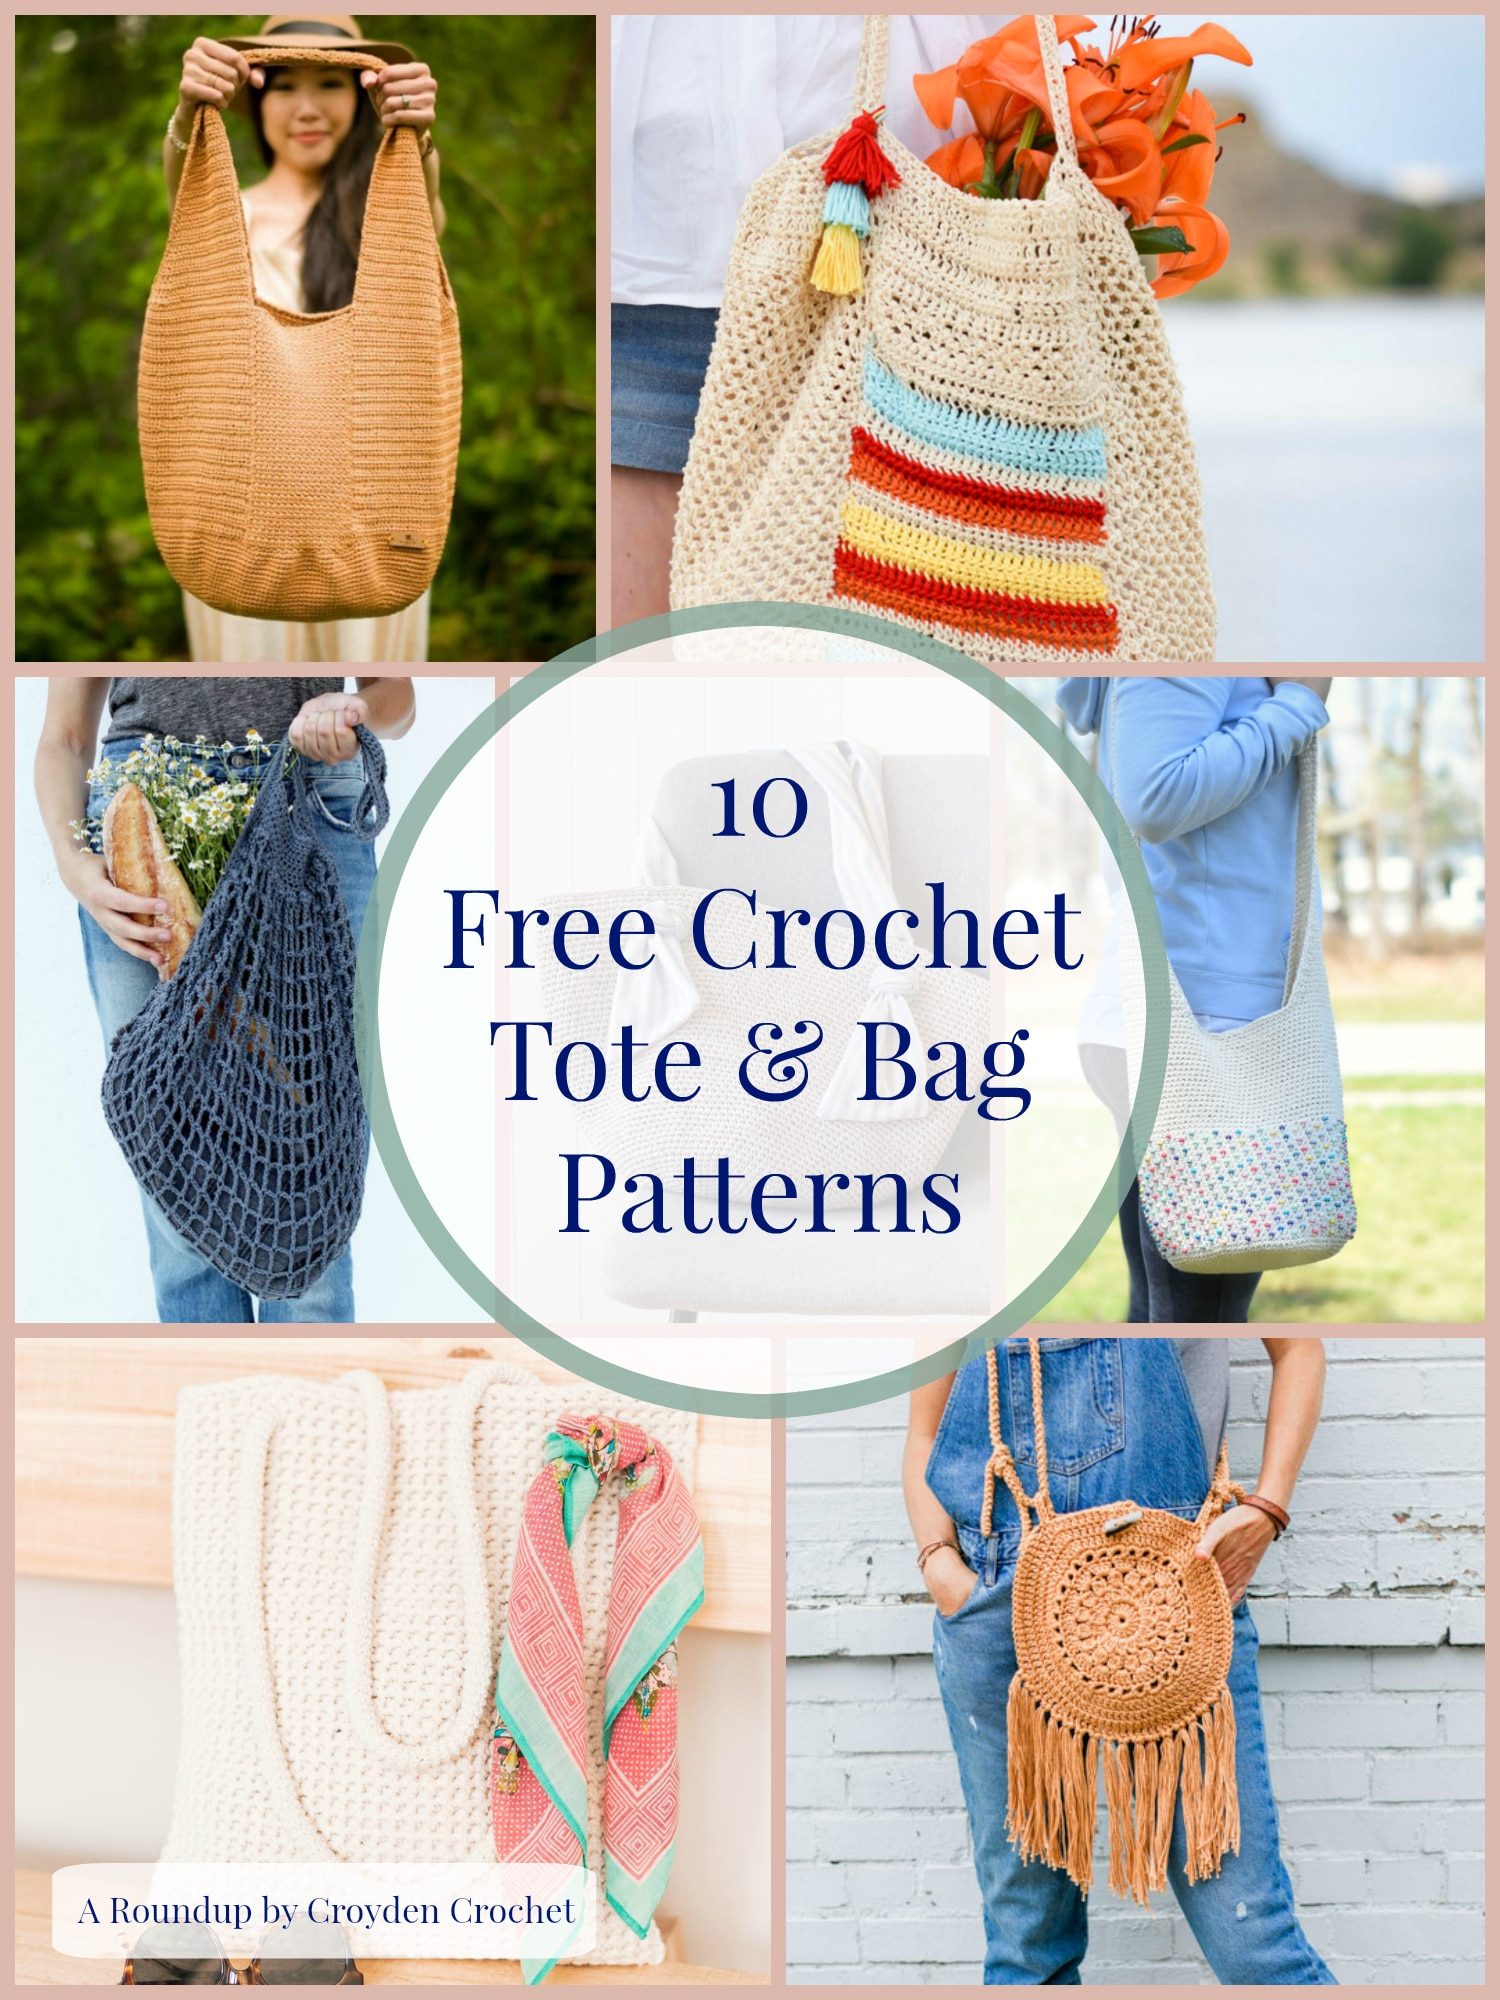 10 Free Crochet Tote And Bag Patterns A Roundup By Croyden Crochet